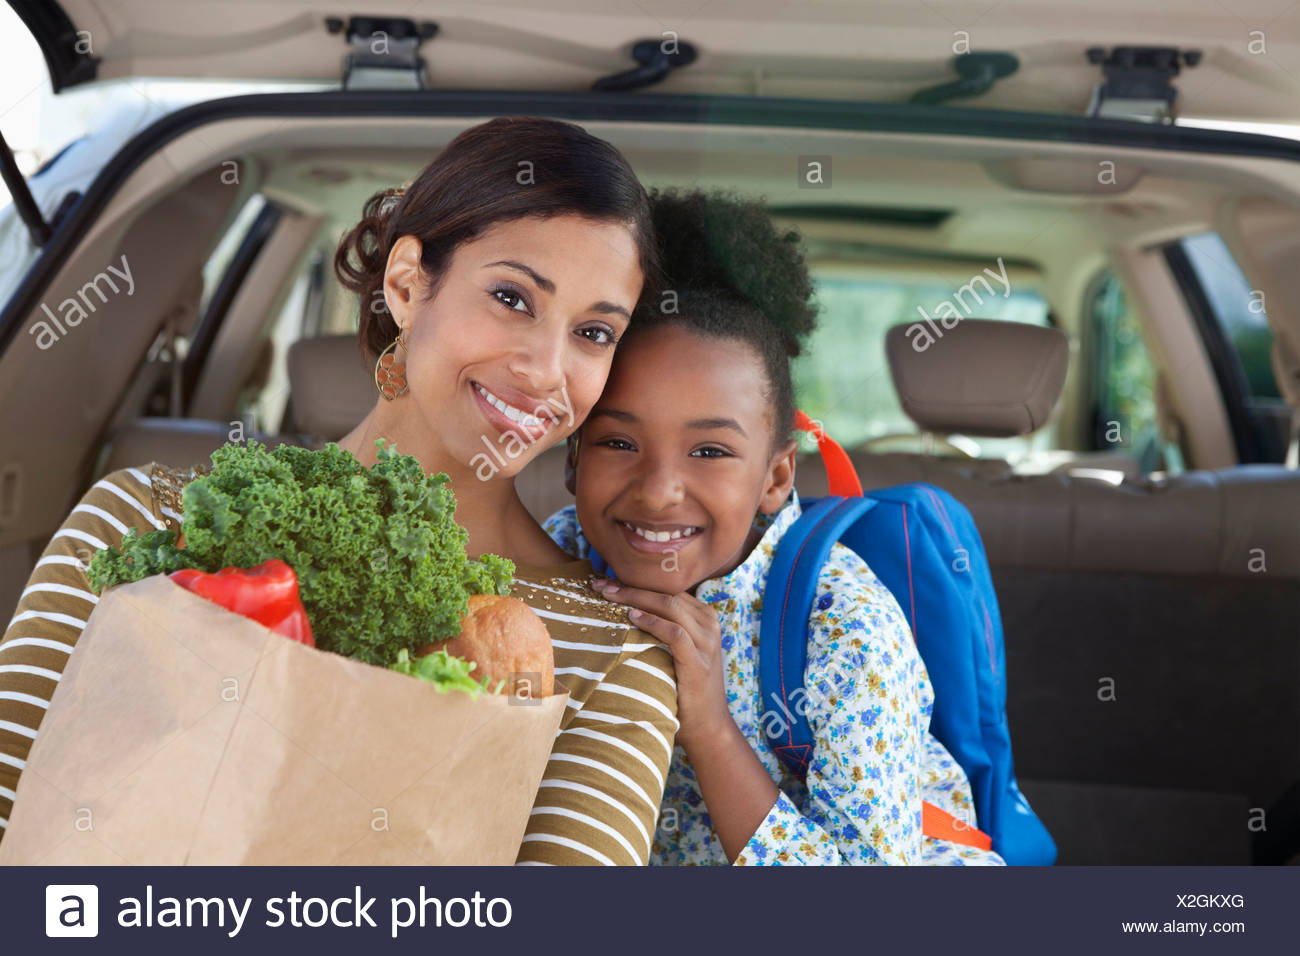 Mother and daughter unloading groceries from car - Stock Image